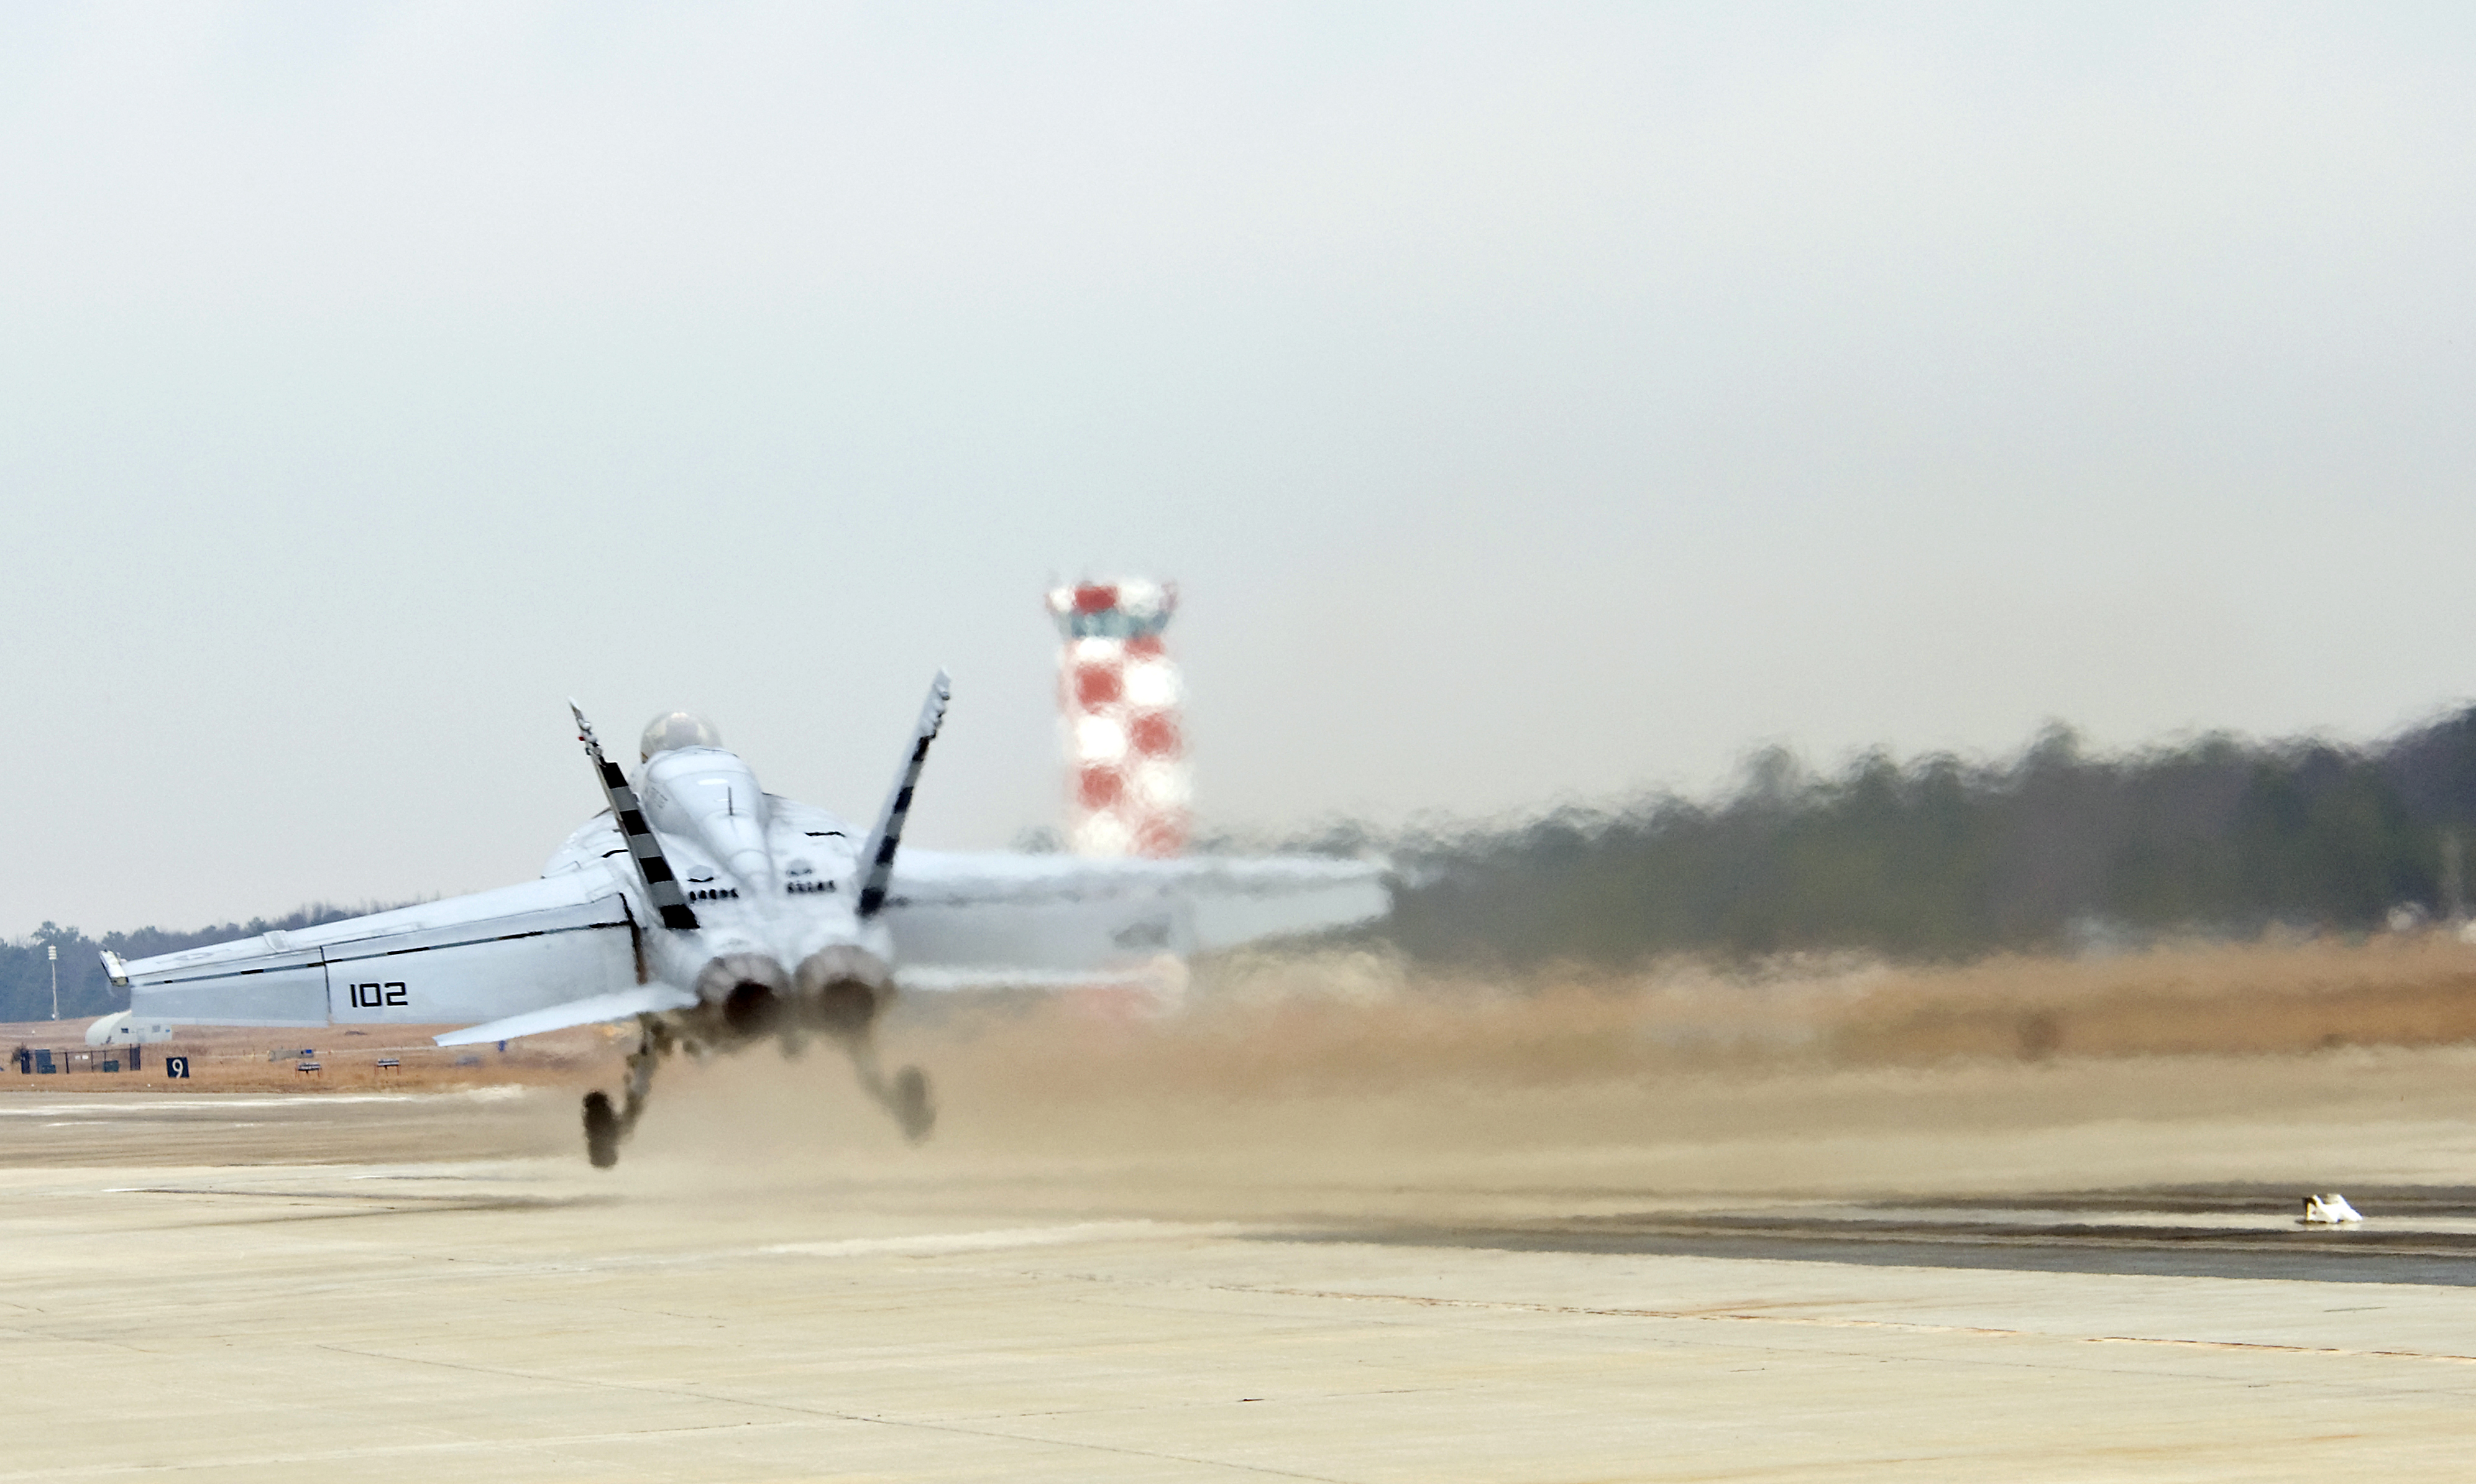 Many of the Ford-class carriers' systems, including the Dual Band Radar, Electromagnetic Aircraft Launch System and Advanced Arresting Gear, were designed and delivered as government-furnished equipment. Above, an F/A-18E Super Hornet is launched during a test of the EMALS in Lakehurst, N.J., in 2010. US Navy photo.